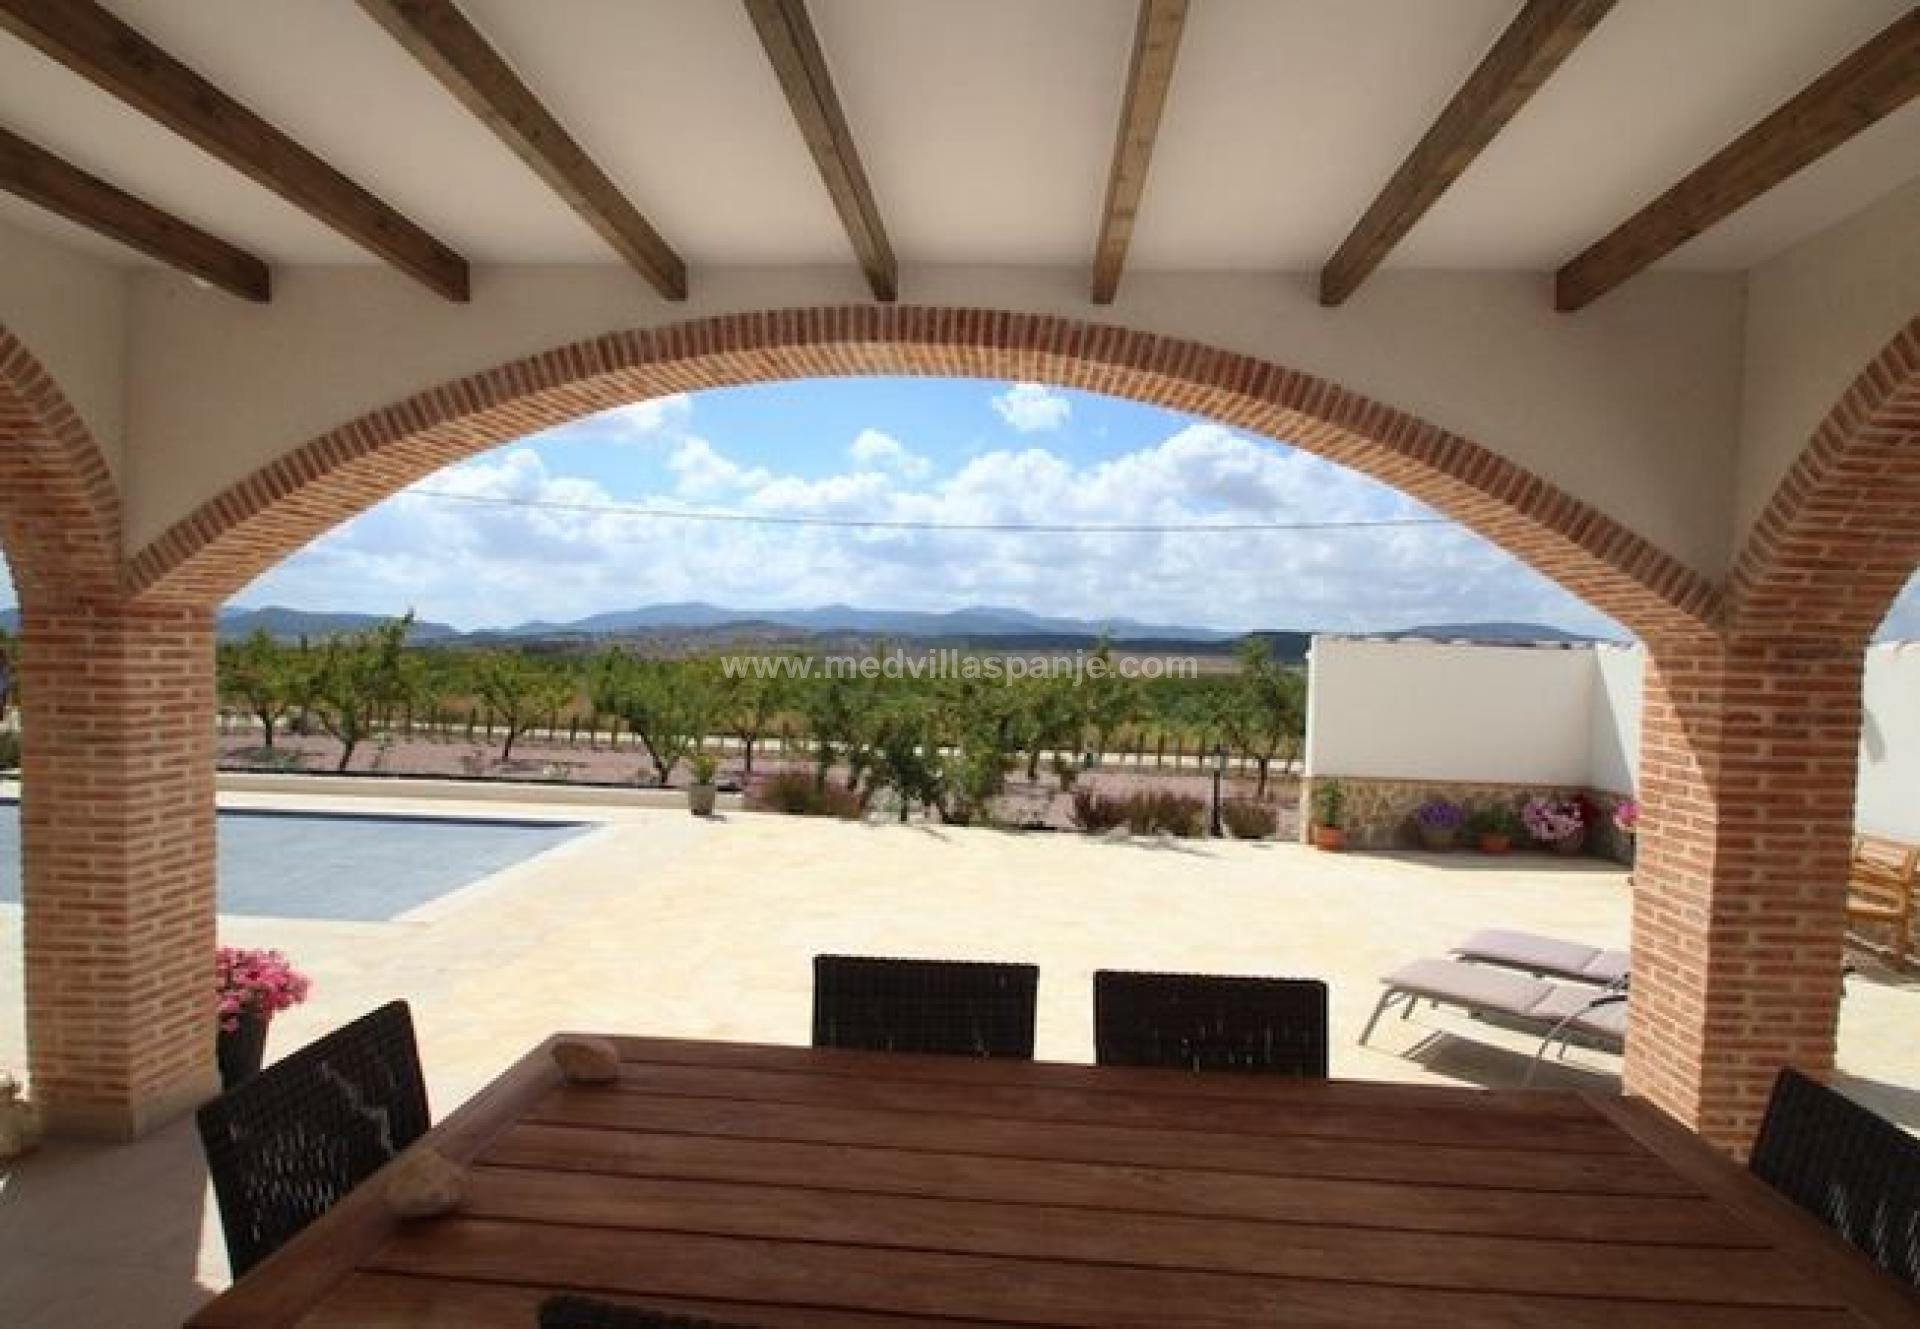 3 bedroom Villa in Pinoso - New build in Medvilla Spanje